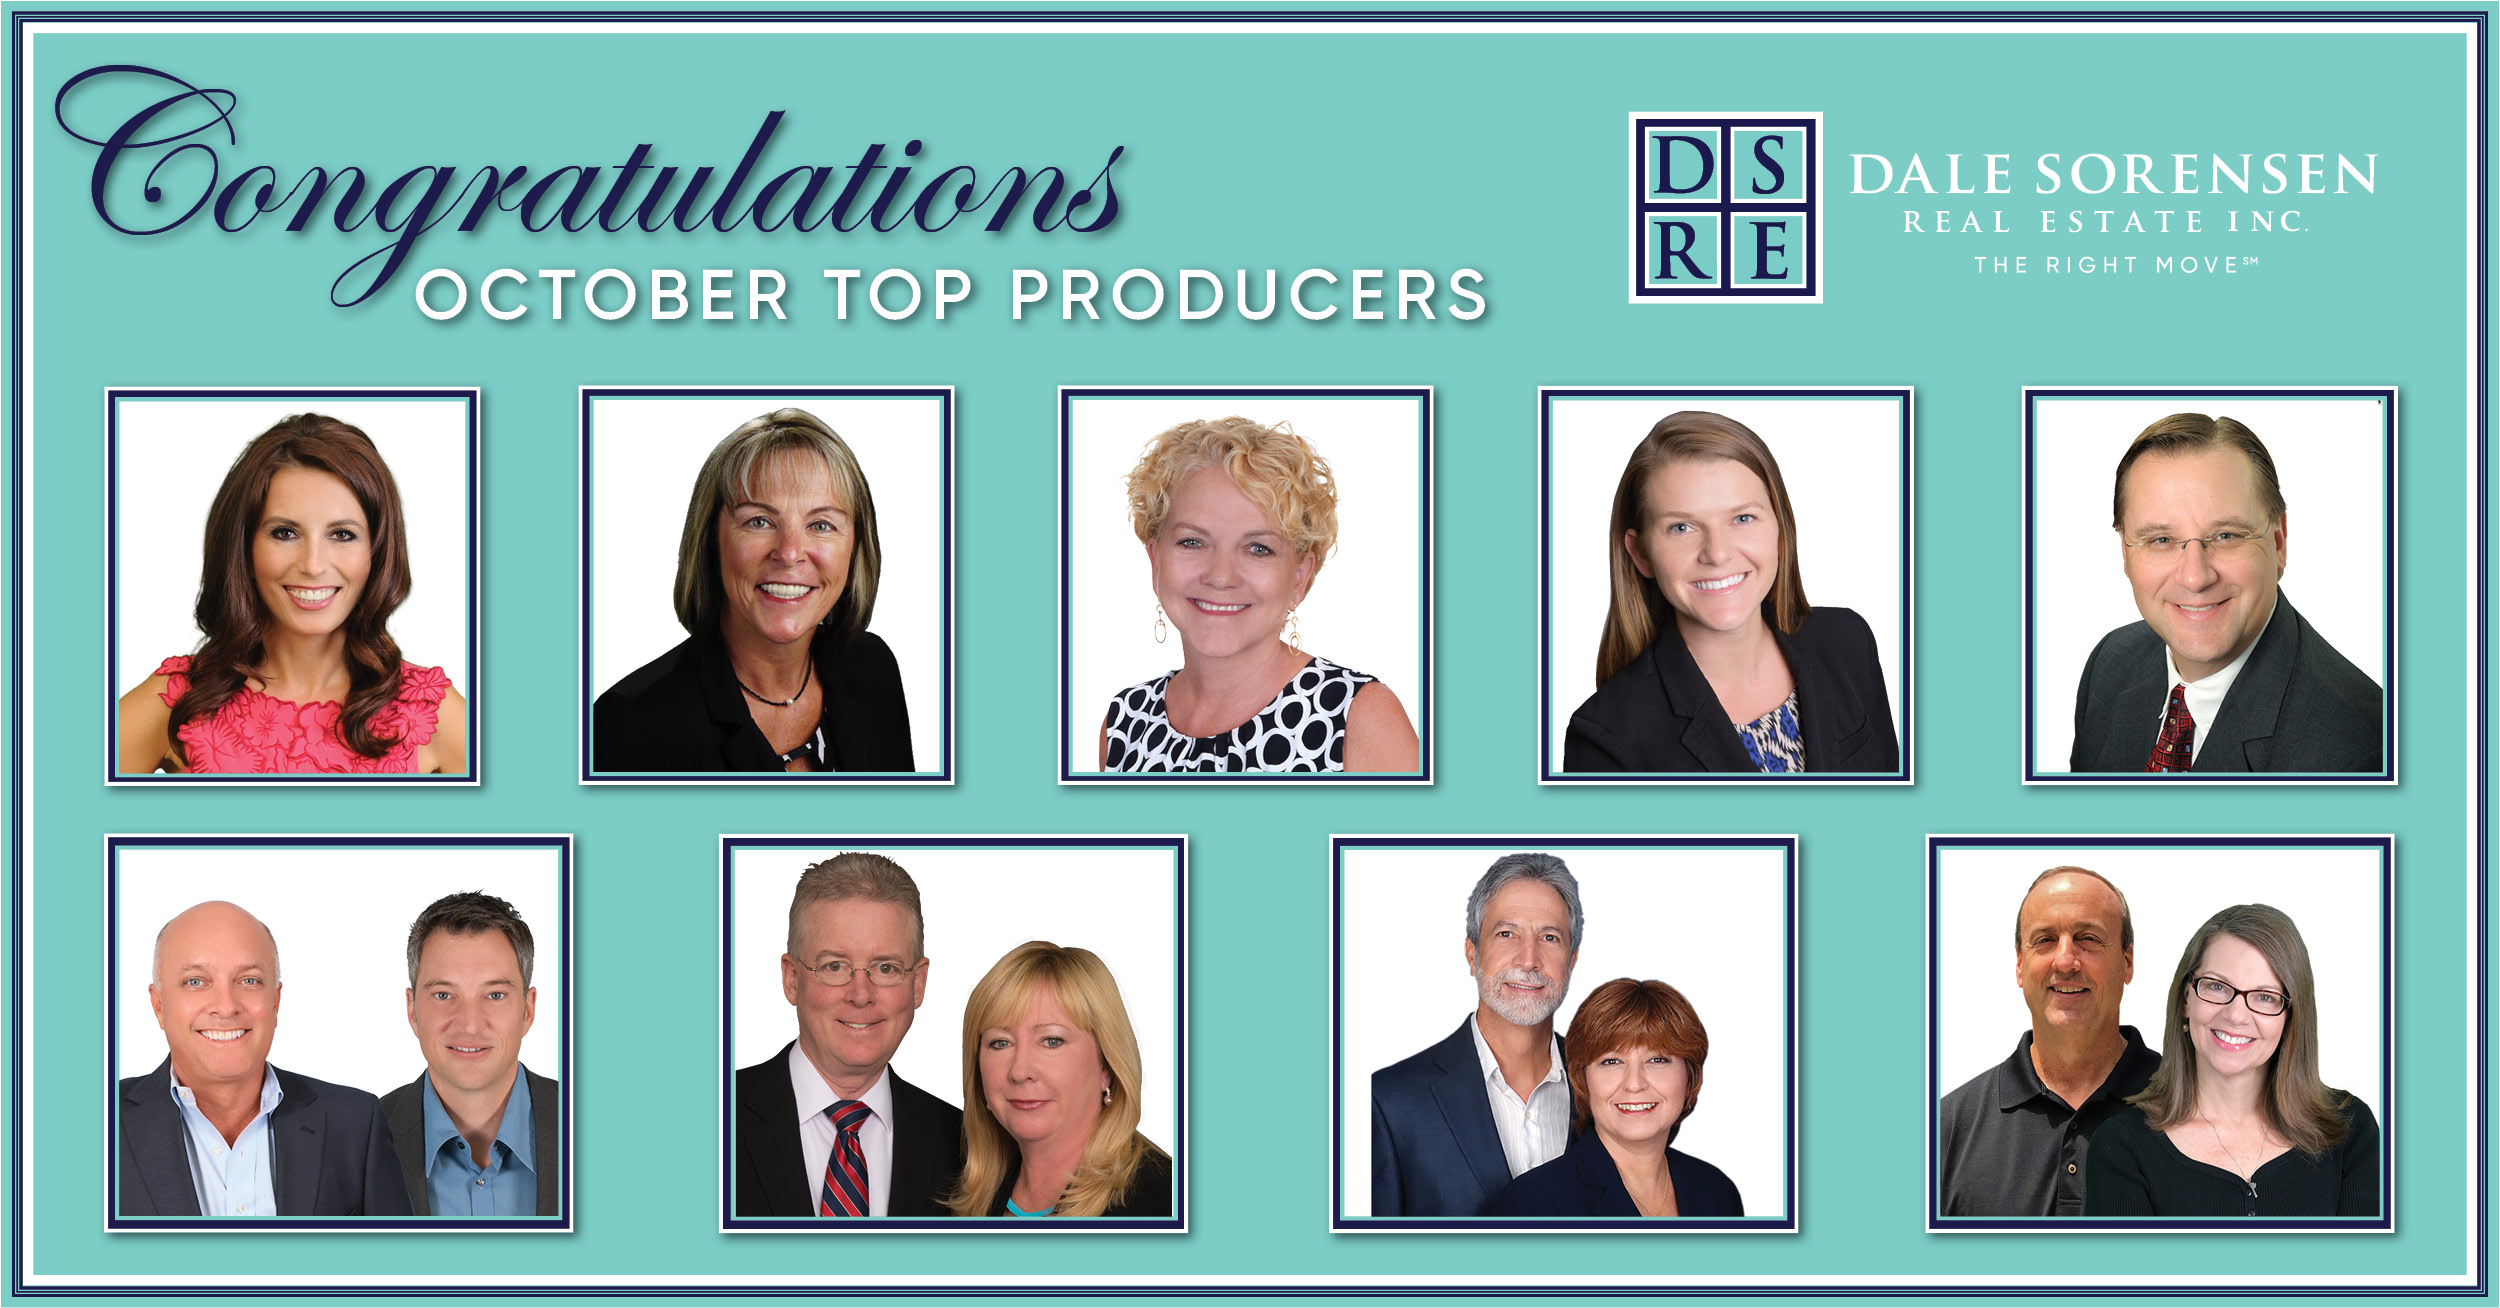 Congratulations October Top Producers DSRE Dale Sorensen Real Estate Inc. THE RIGHT MOVE